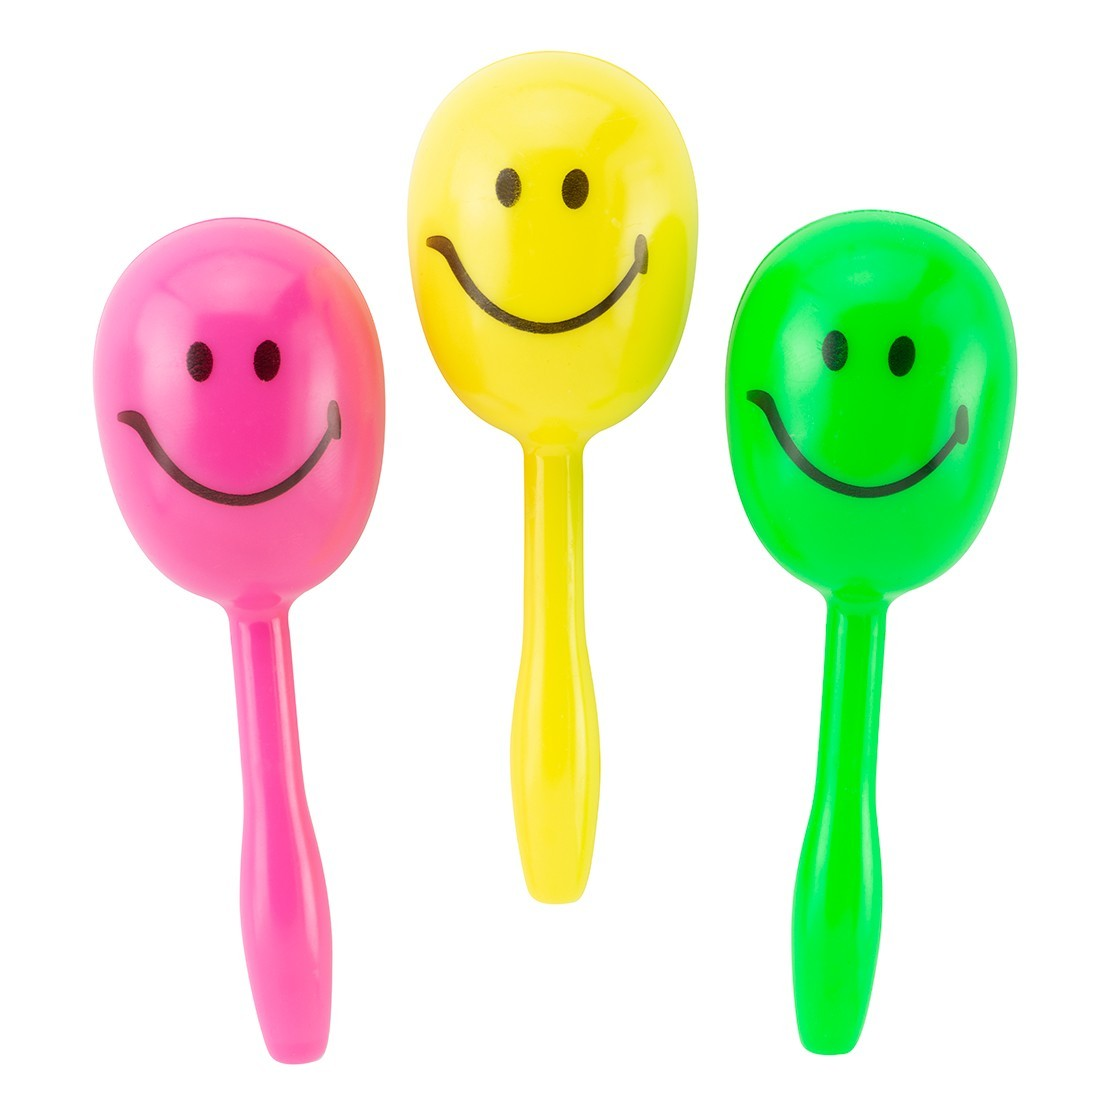 Smiley Maracas [image]